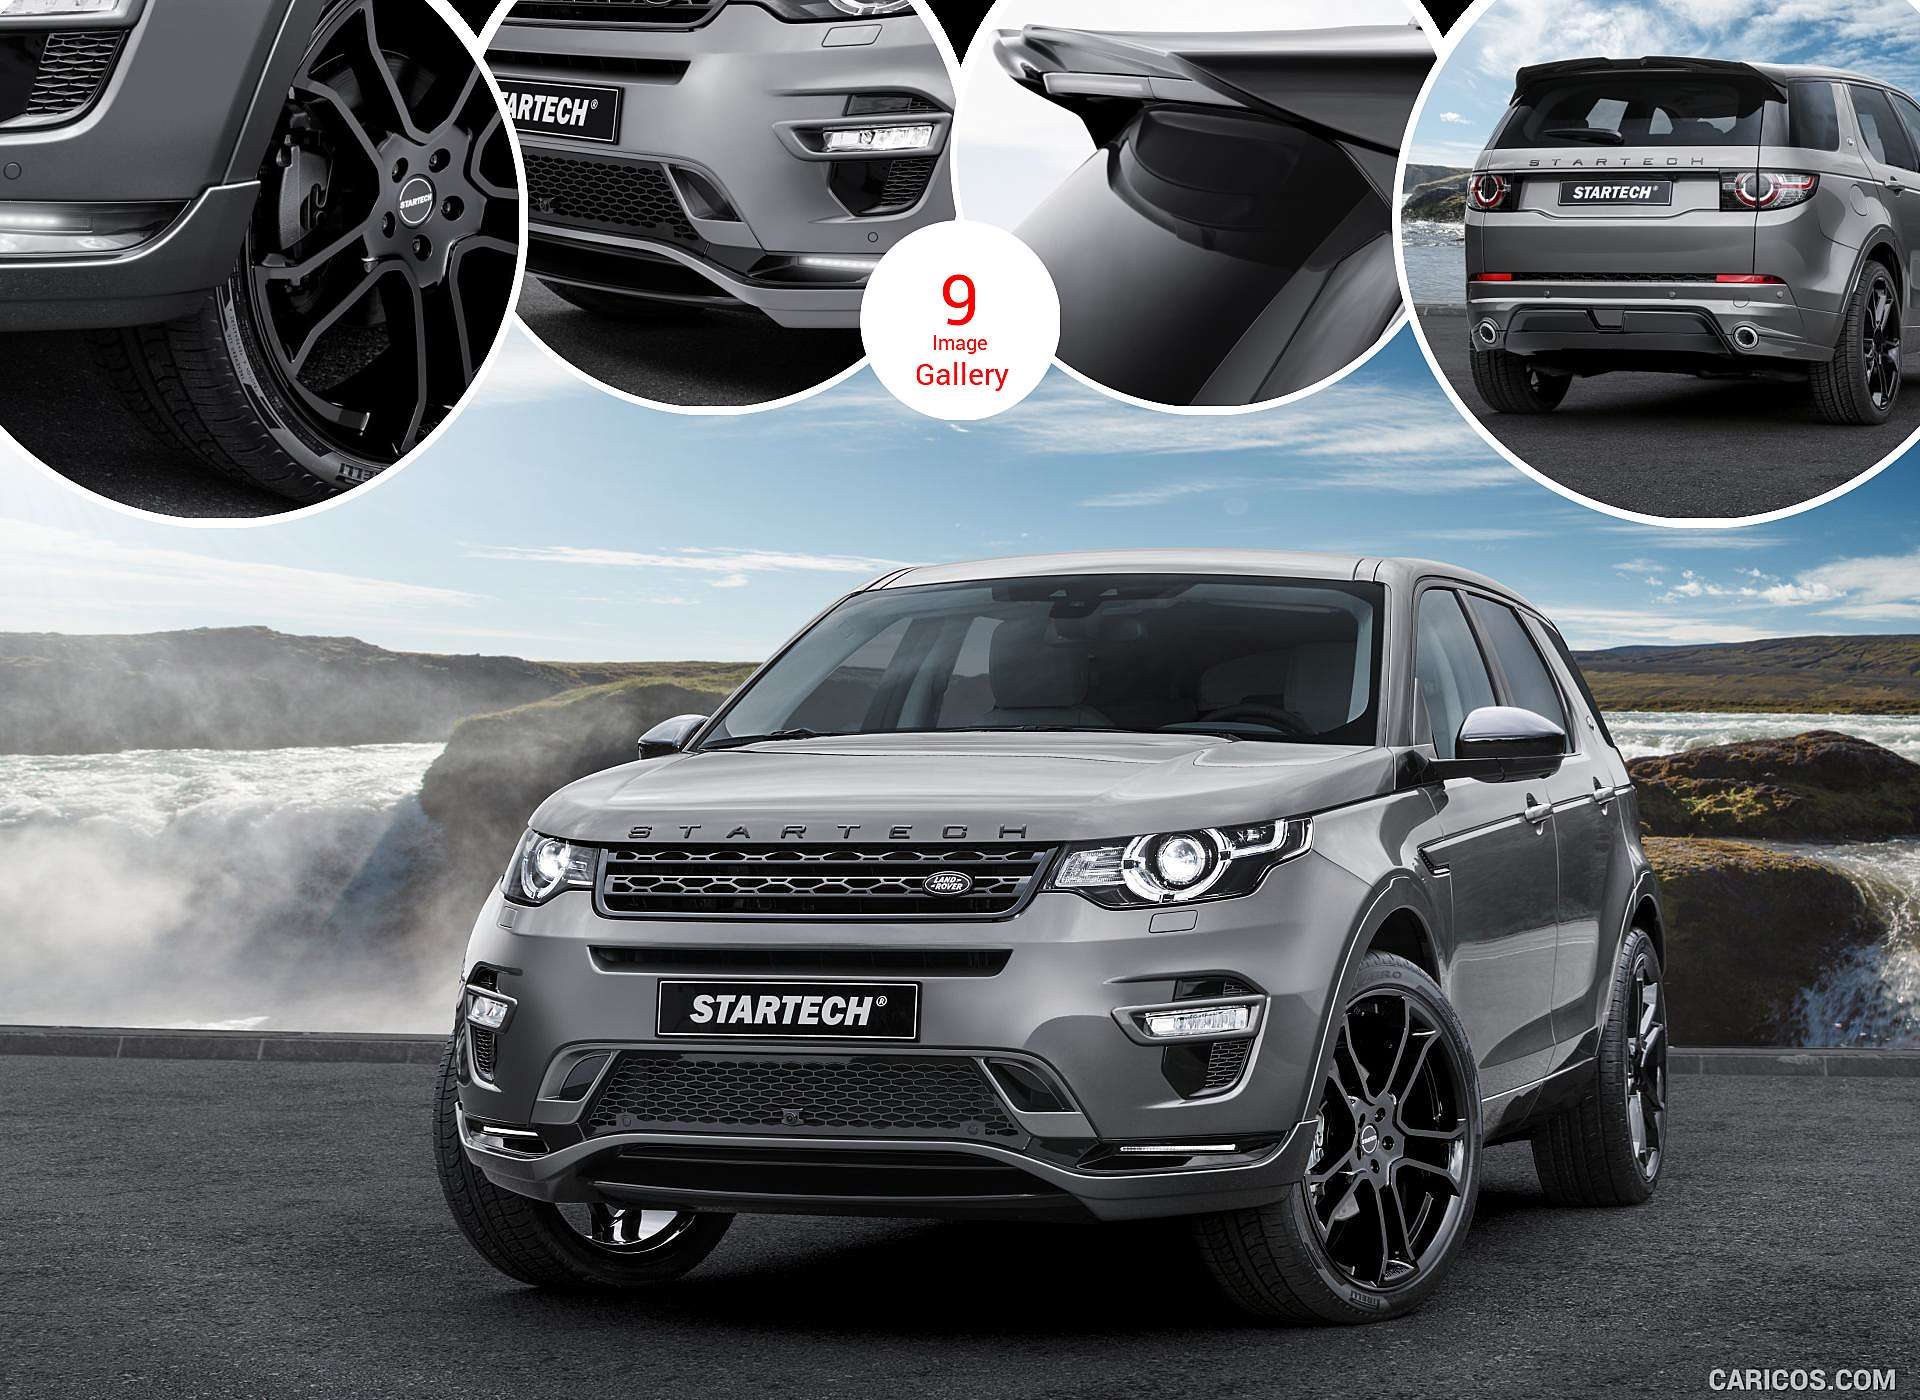 2015 STARTECH Land Rover Discovery Sport